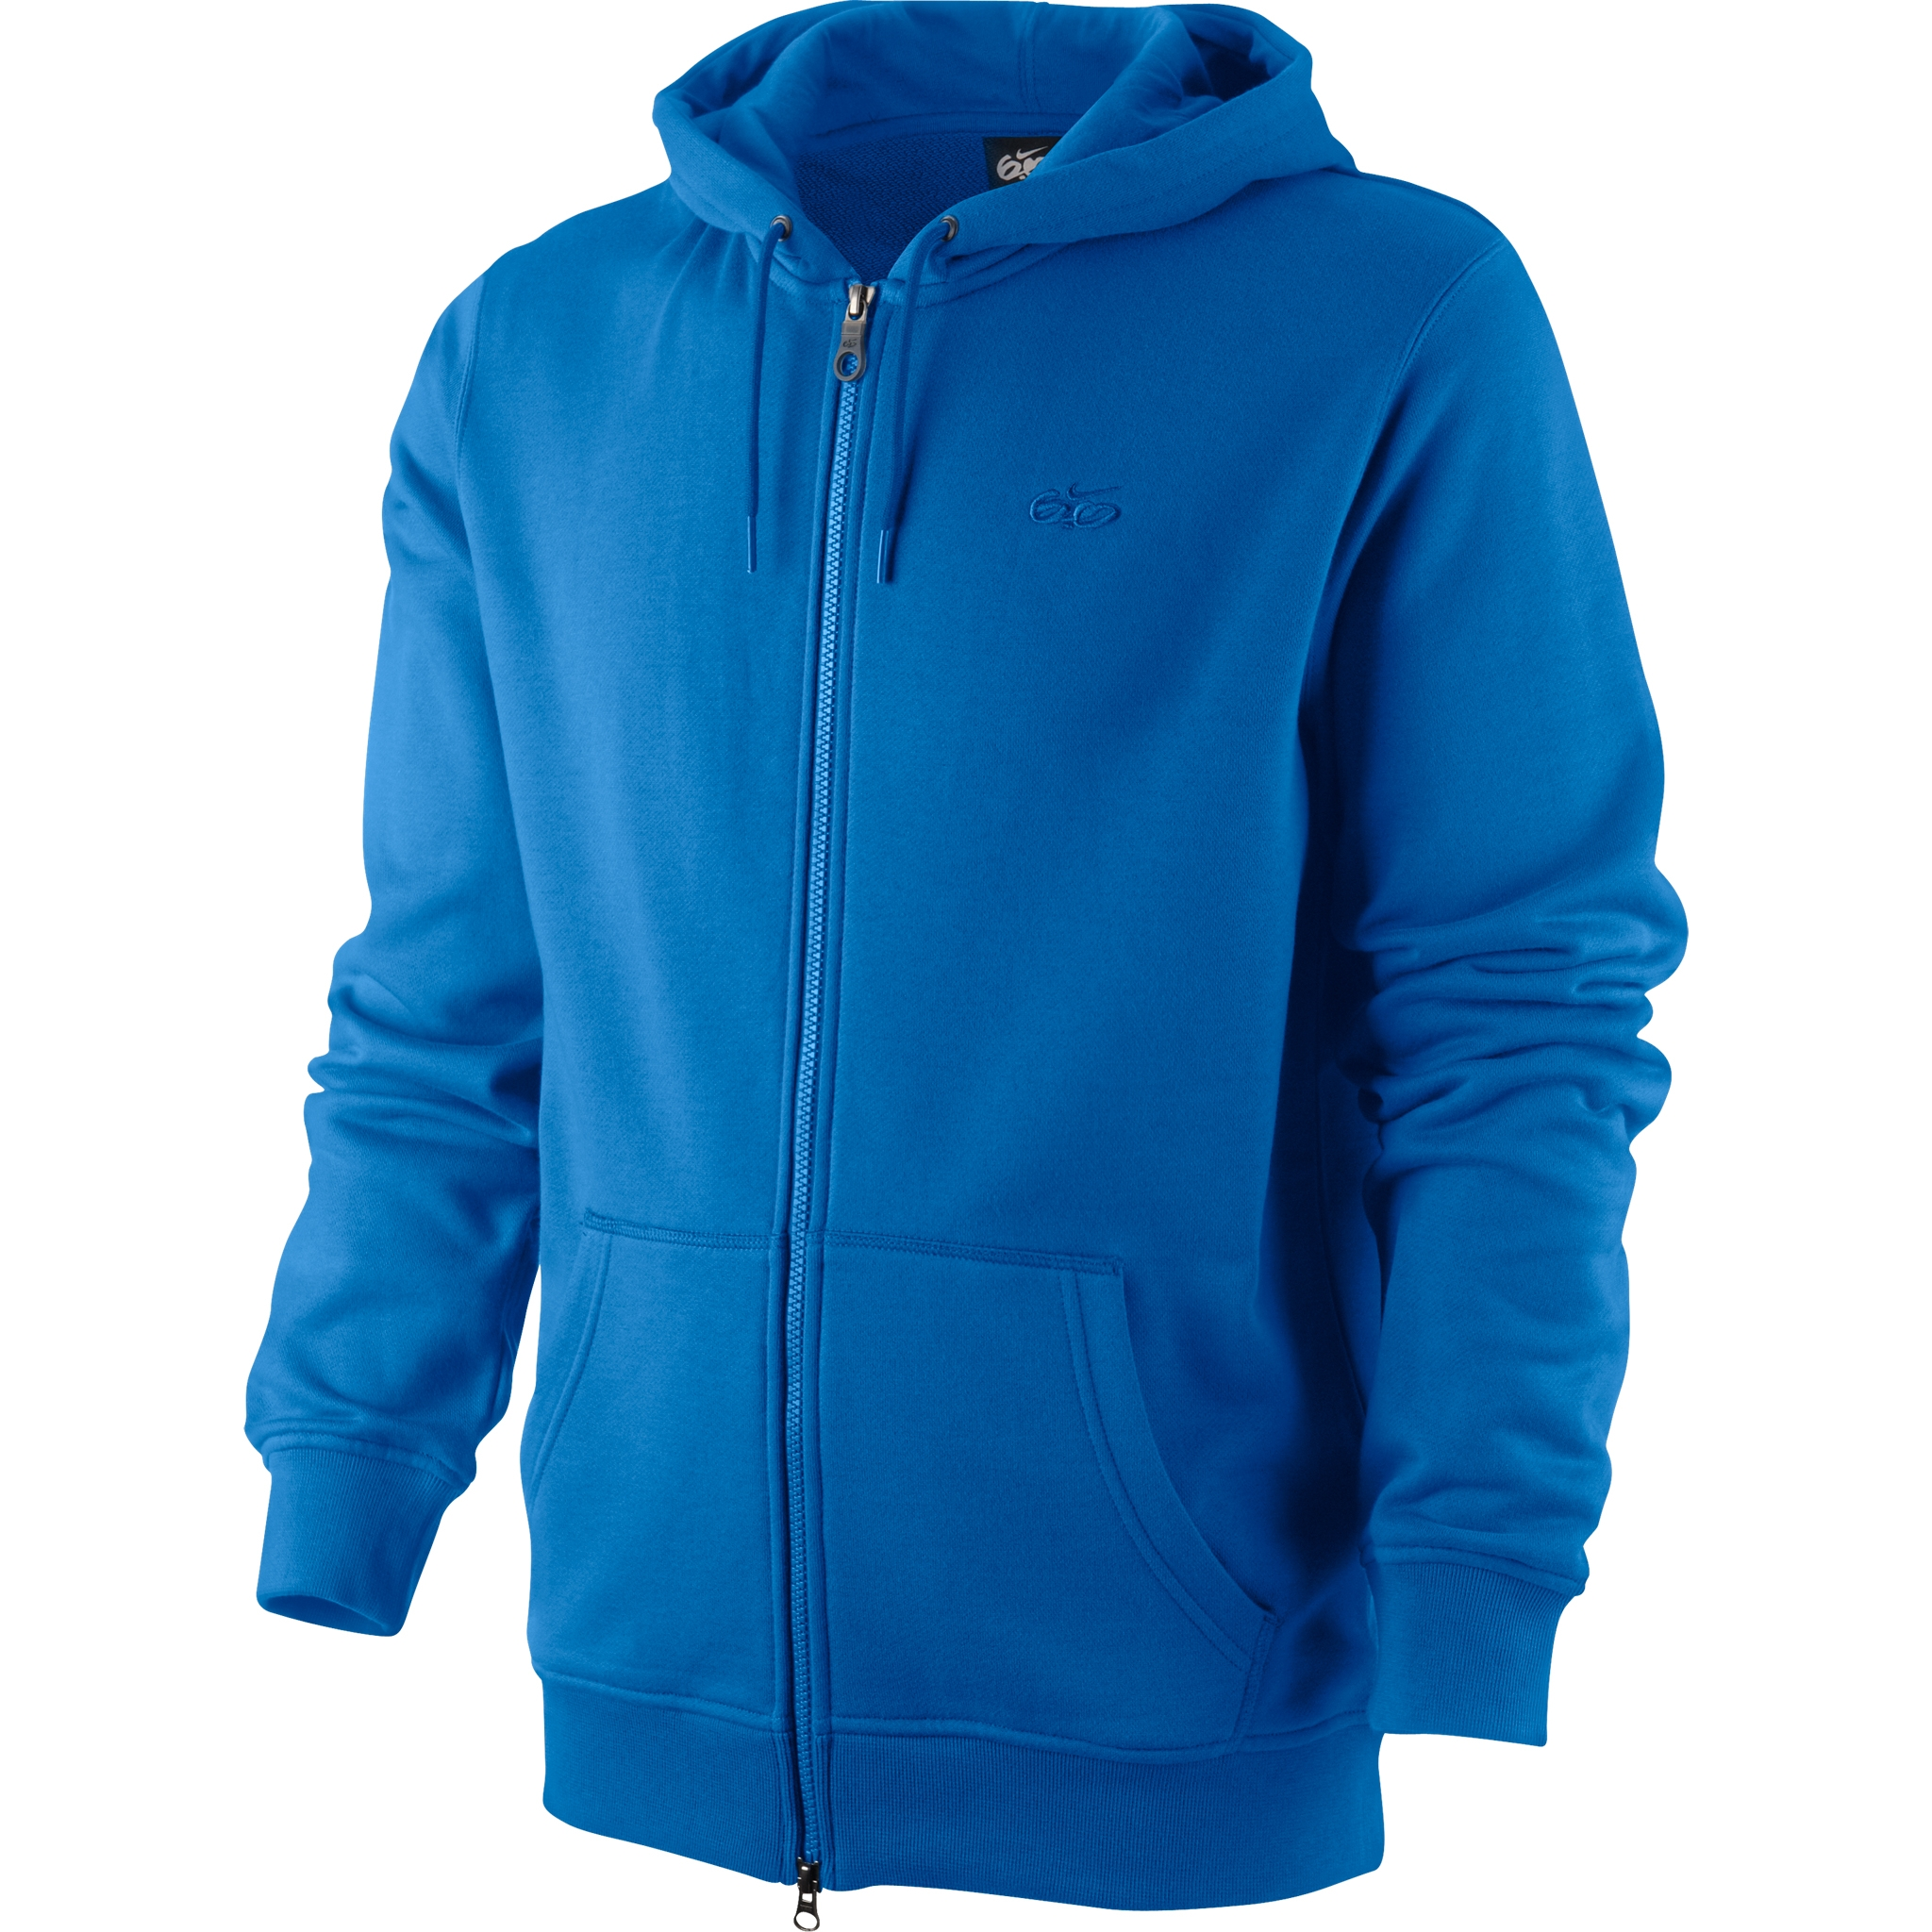 Toronto Blue Jays Sweatshirts & Hoodies Keep your baseball ensemble current with the stylish selection of Toronto Blue Jays sweatshirts and hoodies at fluctuatin.gq We offer a wide range of striking Blue Jays baseball sweatshirts and fleece featuring bold team colors and logos.